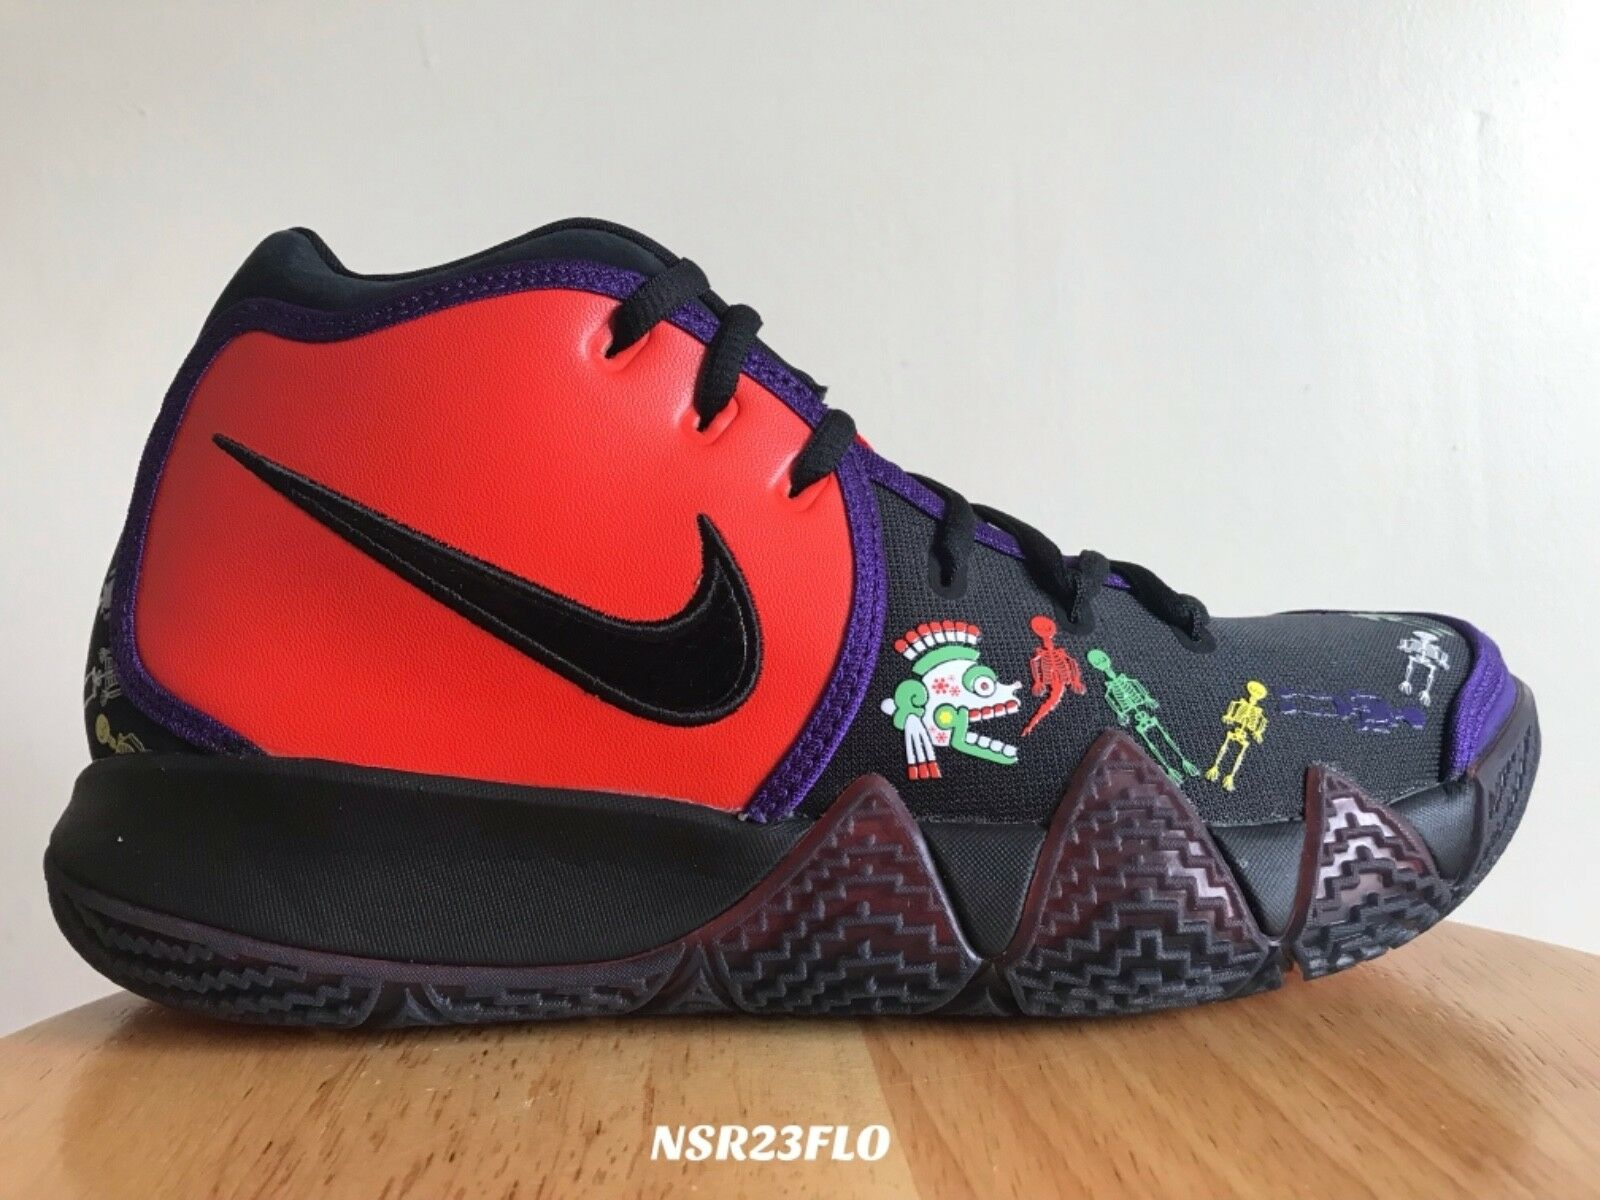 NIKE KYRIE 4 TV PE DAY OF THE DEAD CI0278 800 SIZE 11 BRAND NEW READY TO SHIP